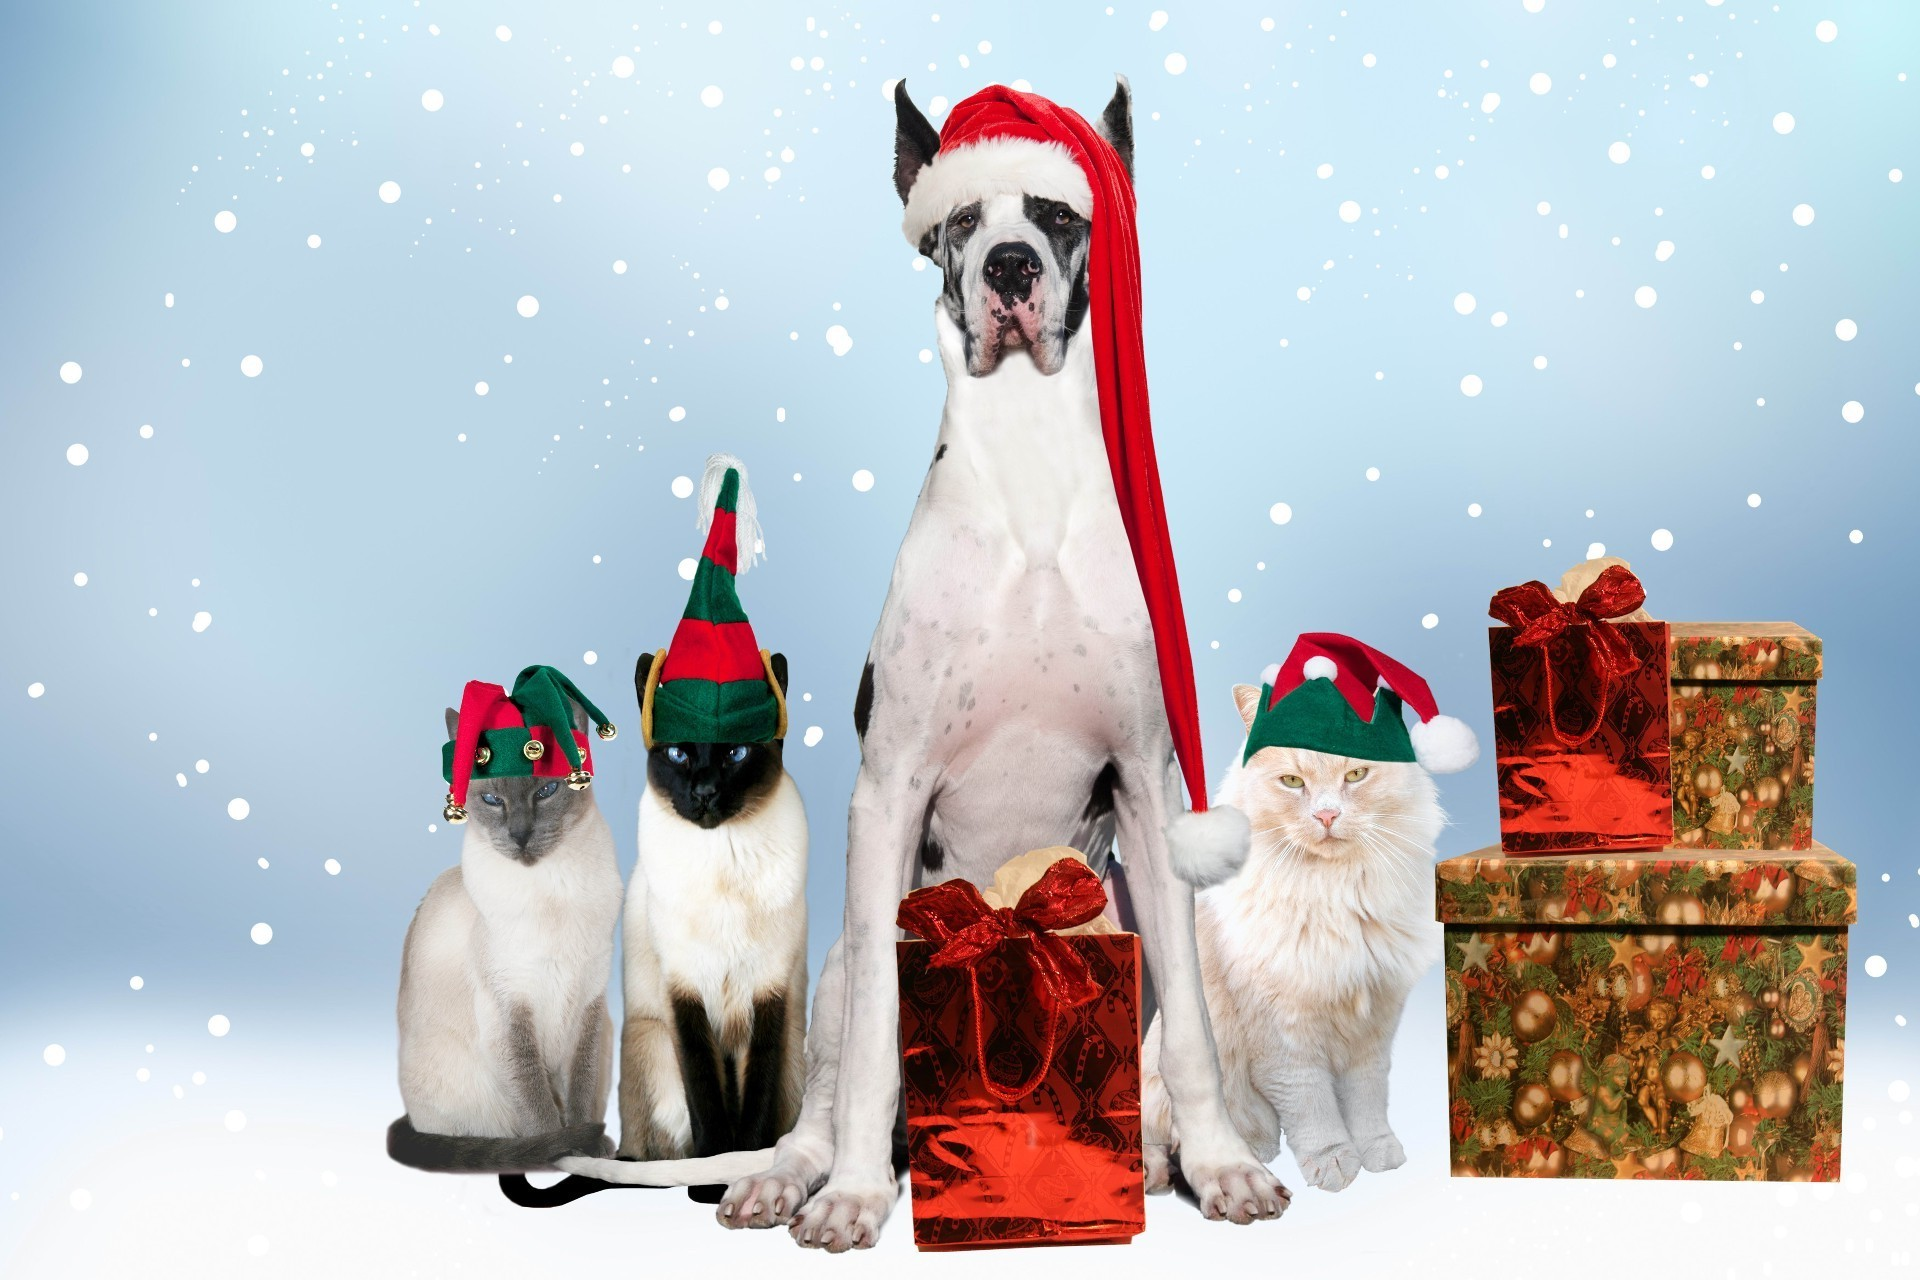 a big dog next to cats and christmas gifts iphone wallpapers for free